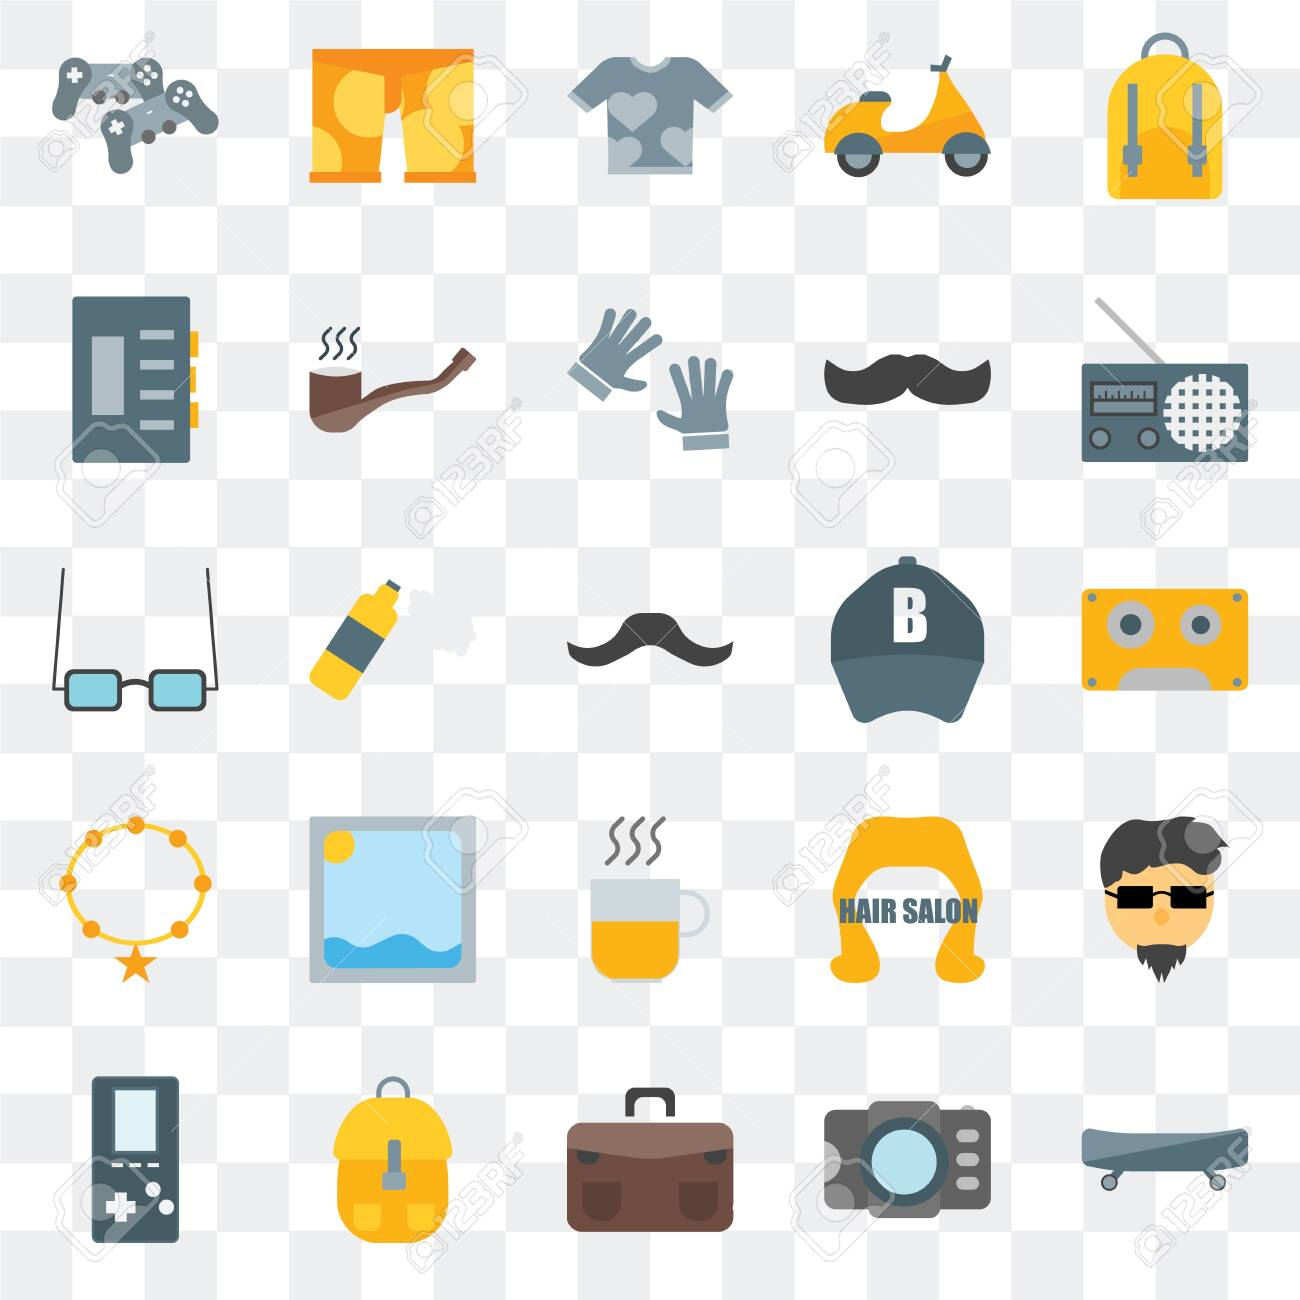 Set Of 25 transparent icons such as Boards, Photograph, Briefcase, Accessory, , Radio, Baseball cap, Hot drinks, Shirt, Clothing, web UI transparency icon pack - 130332484